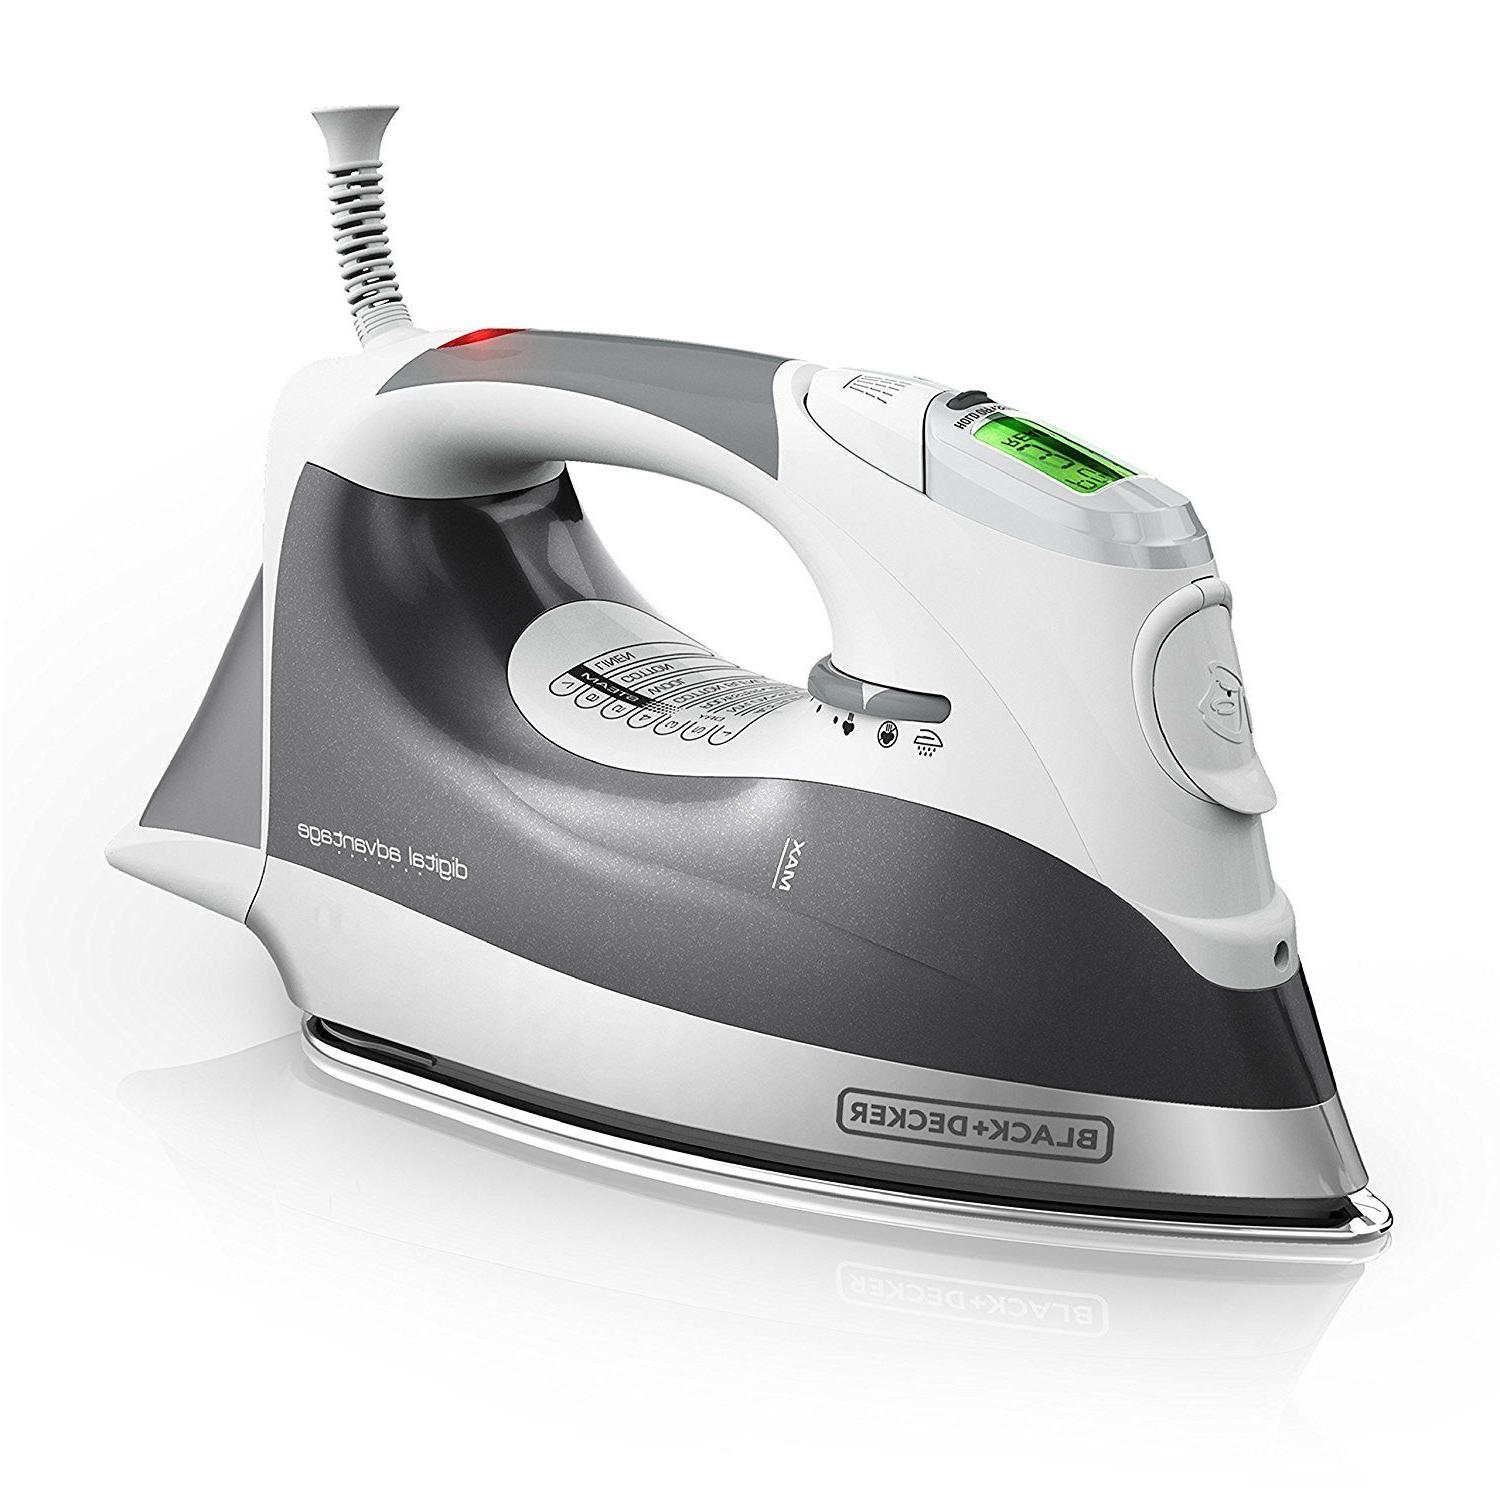 black decker digital advantage professional steam iron